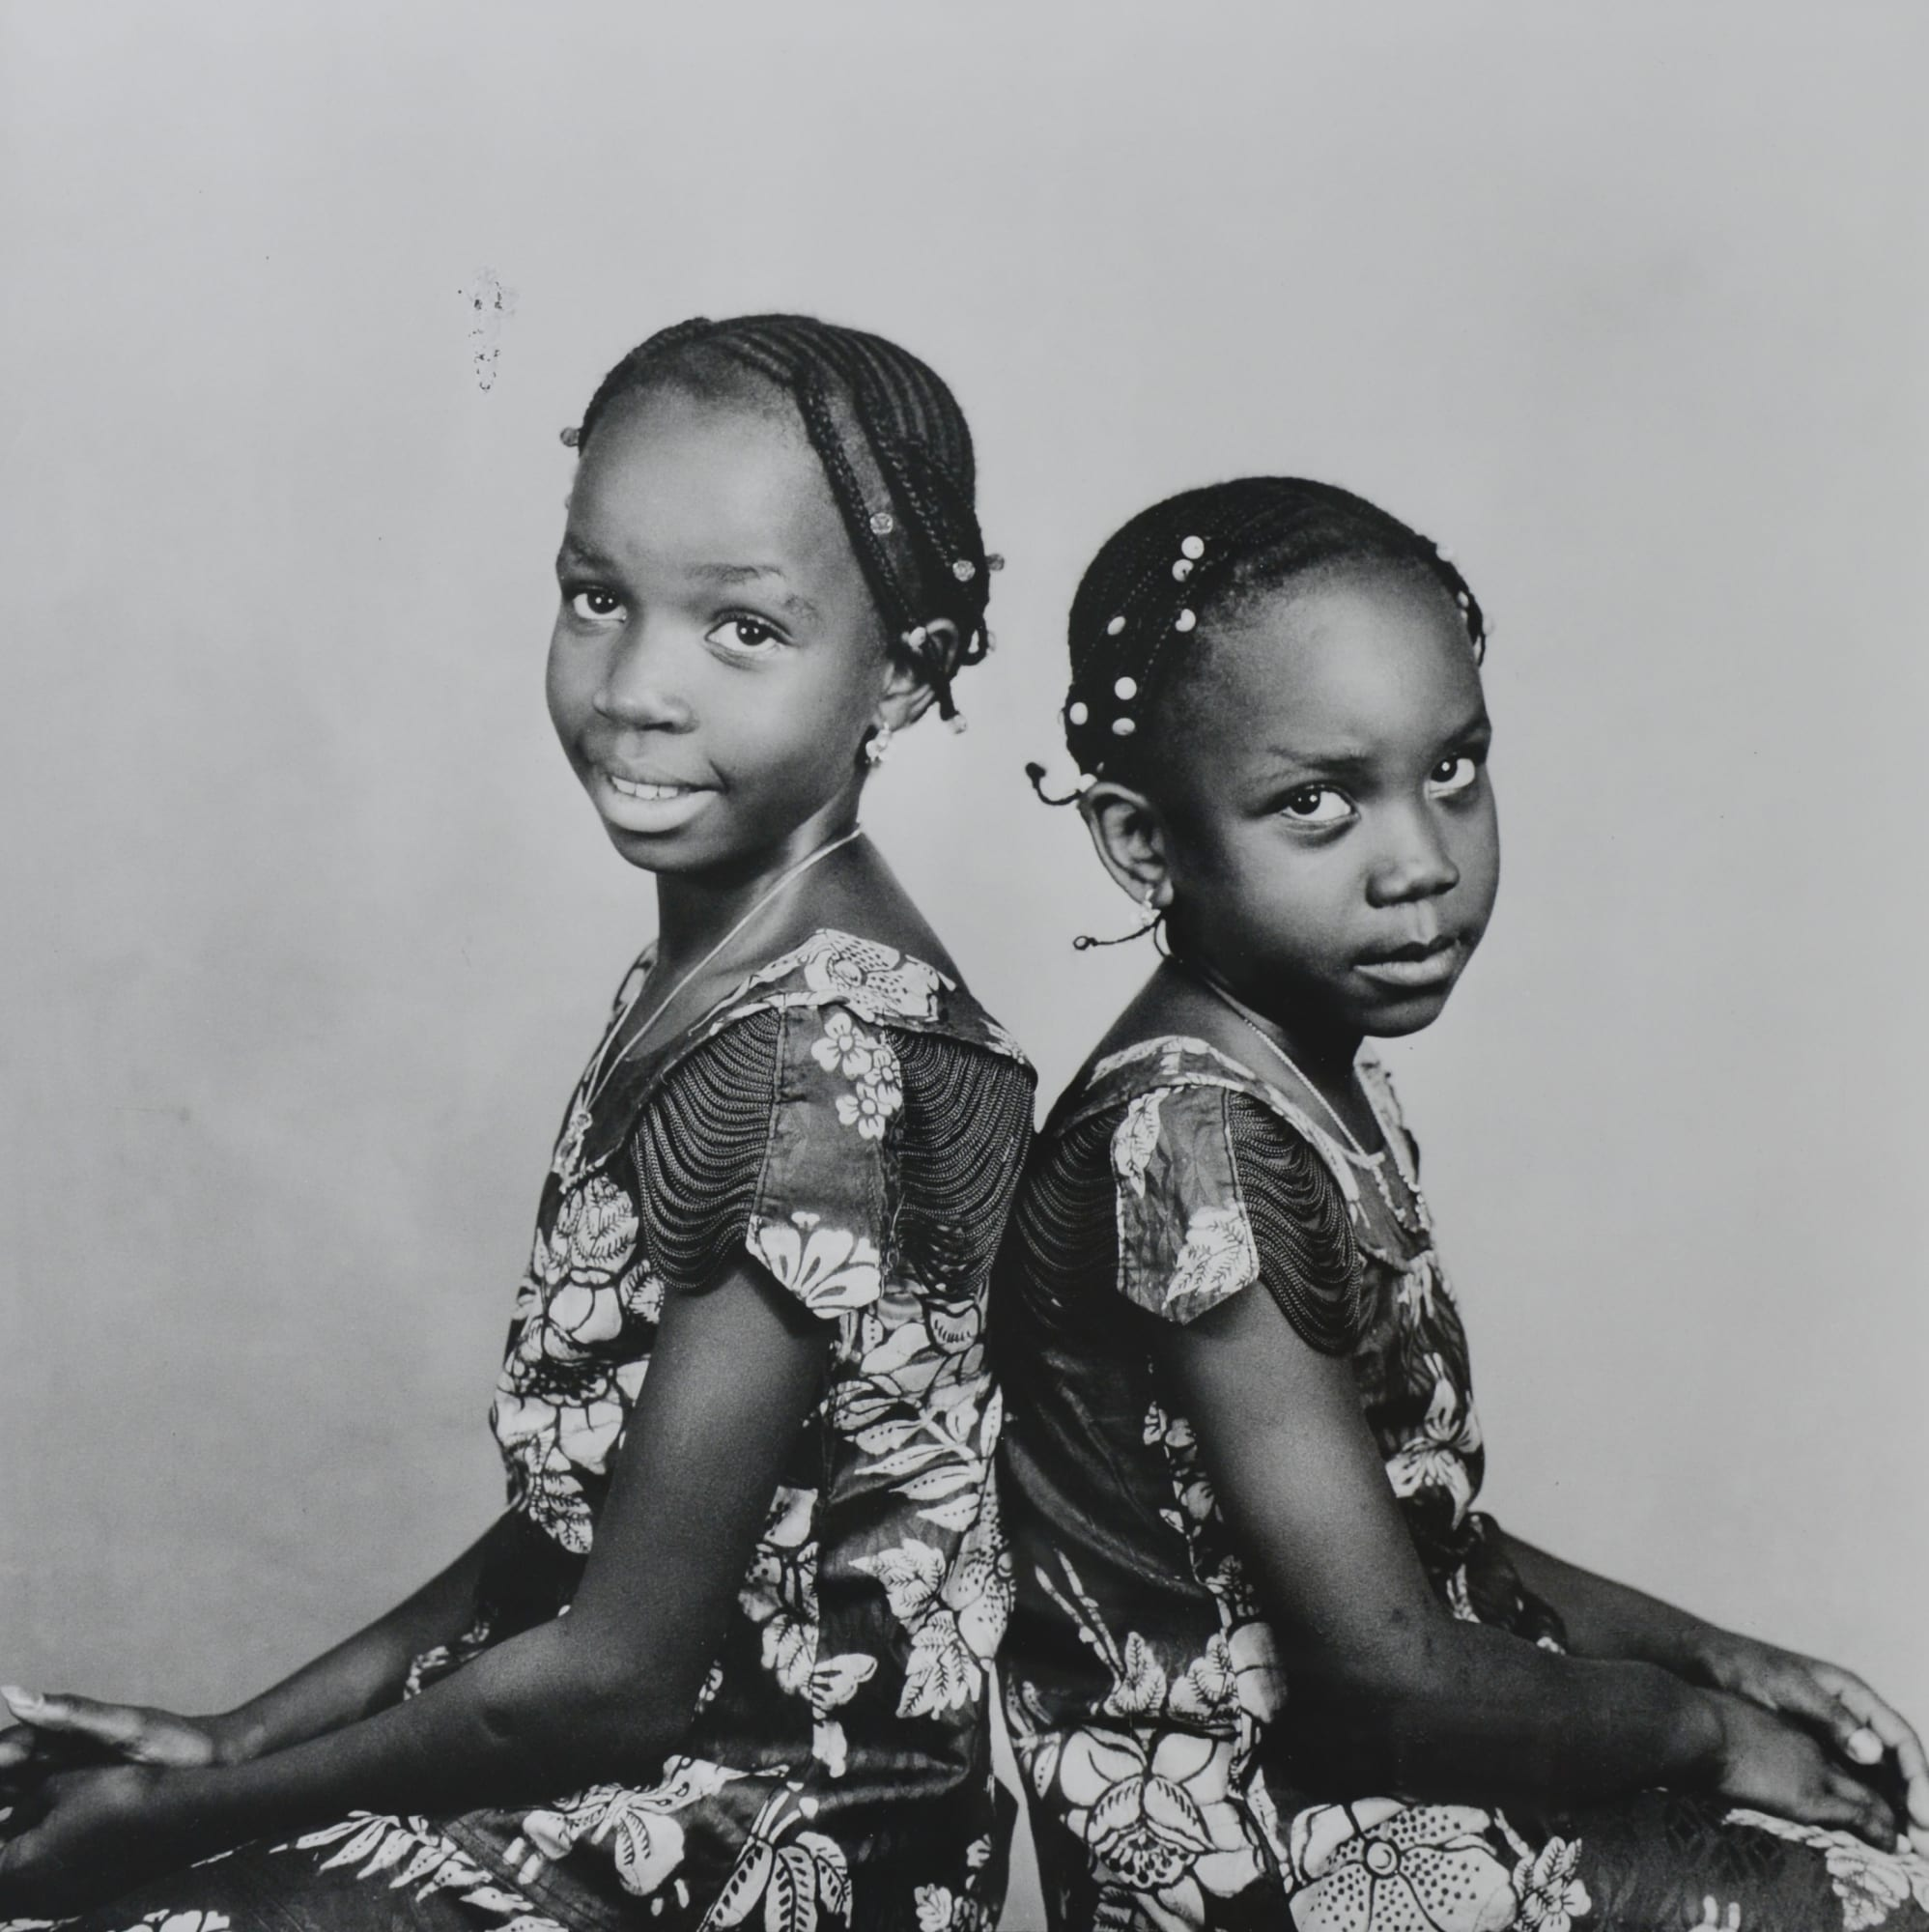 Malick Sidibé - The Two Sisters, 1971